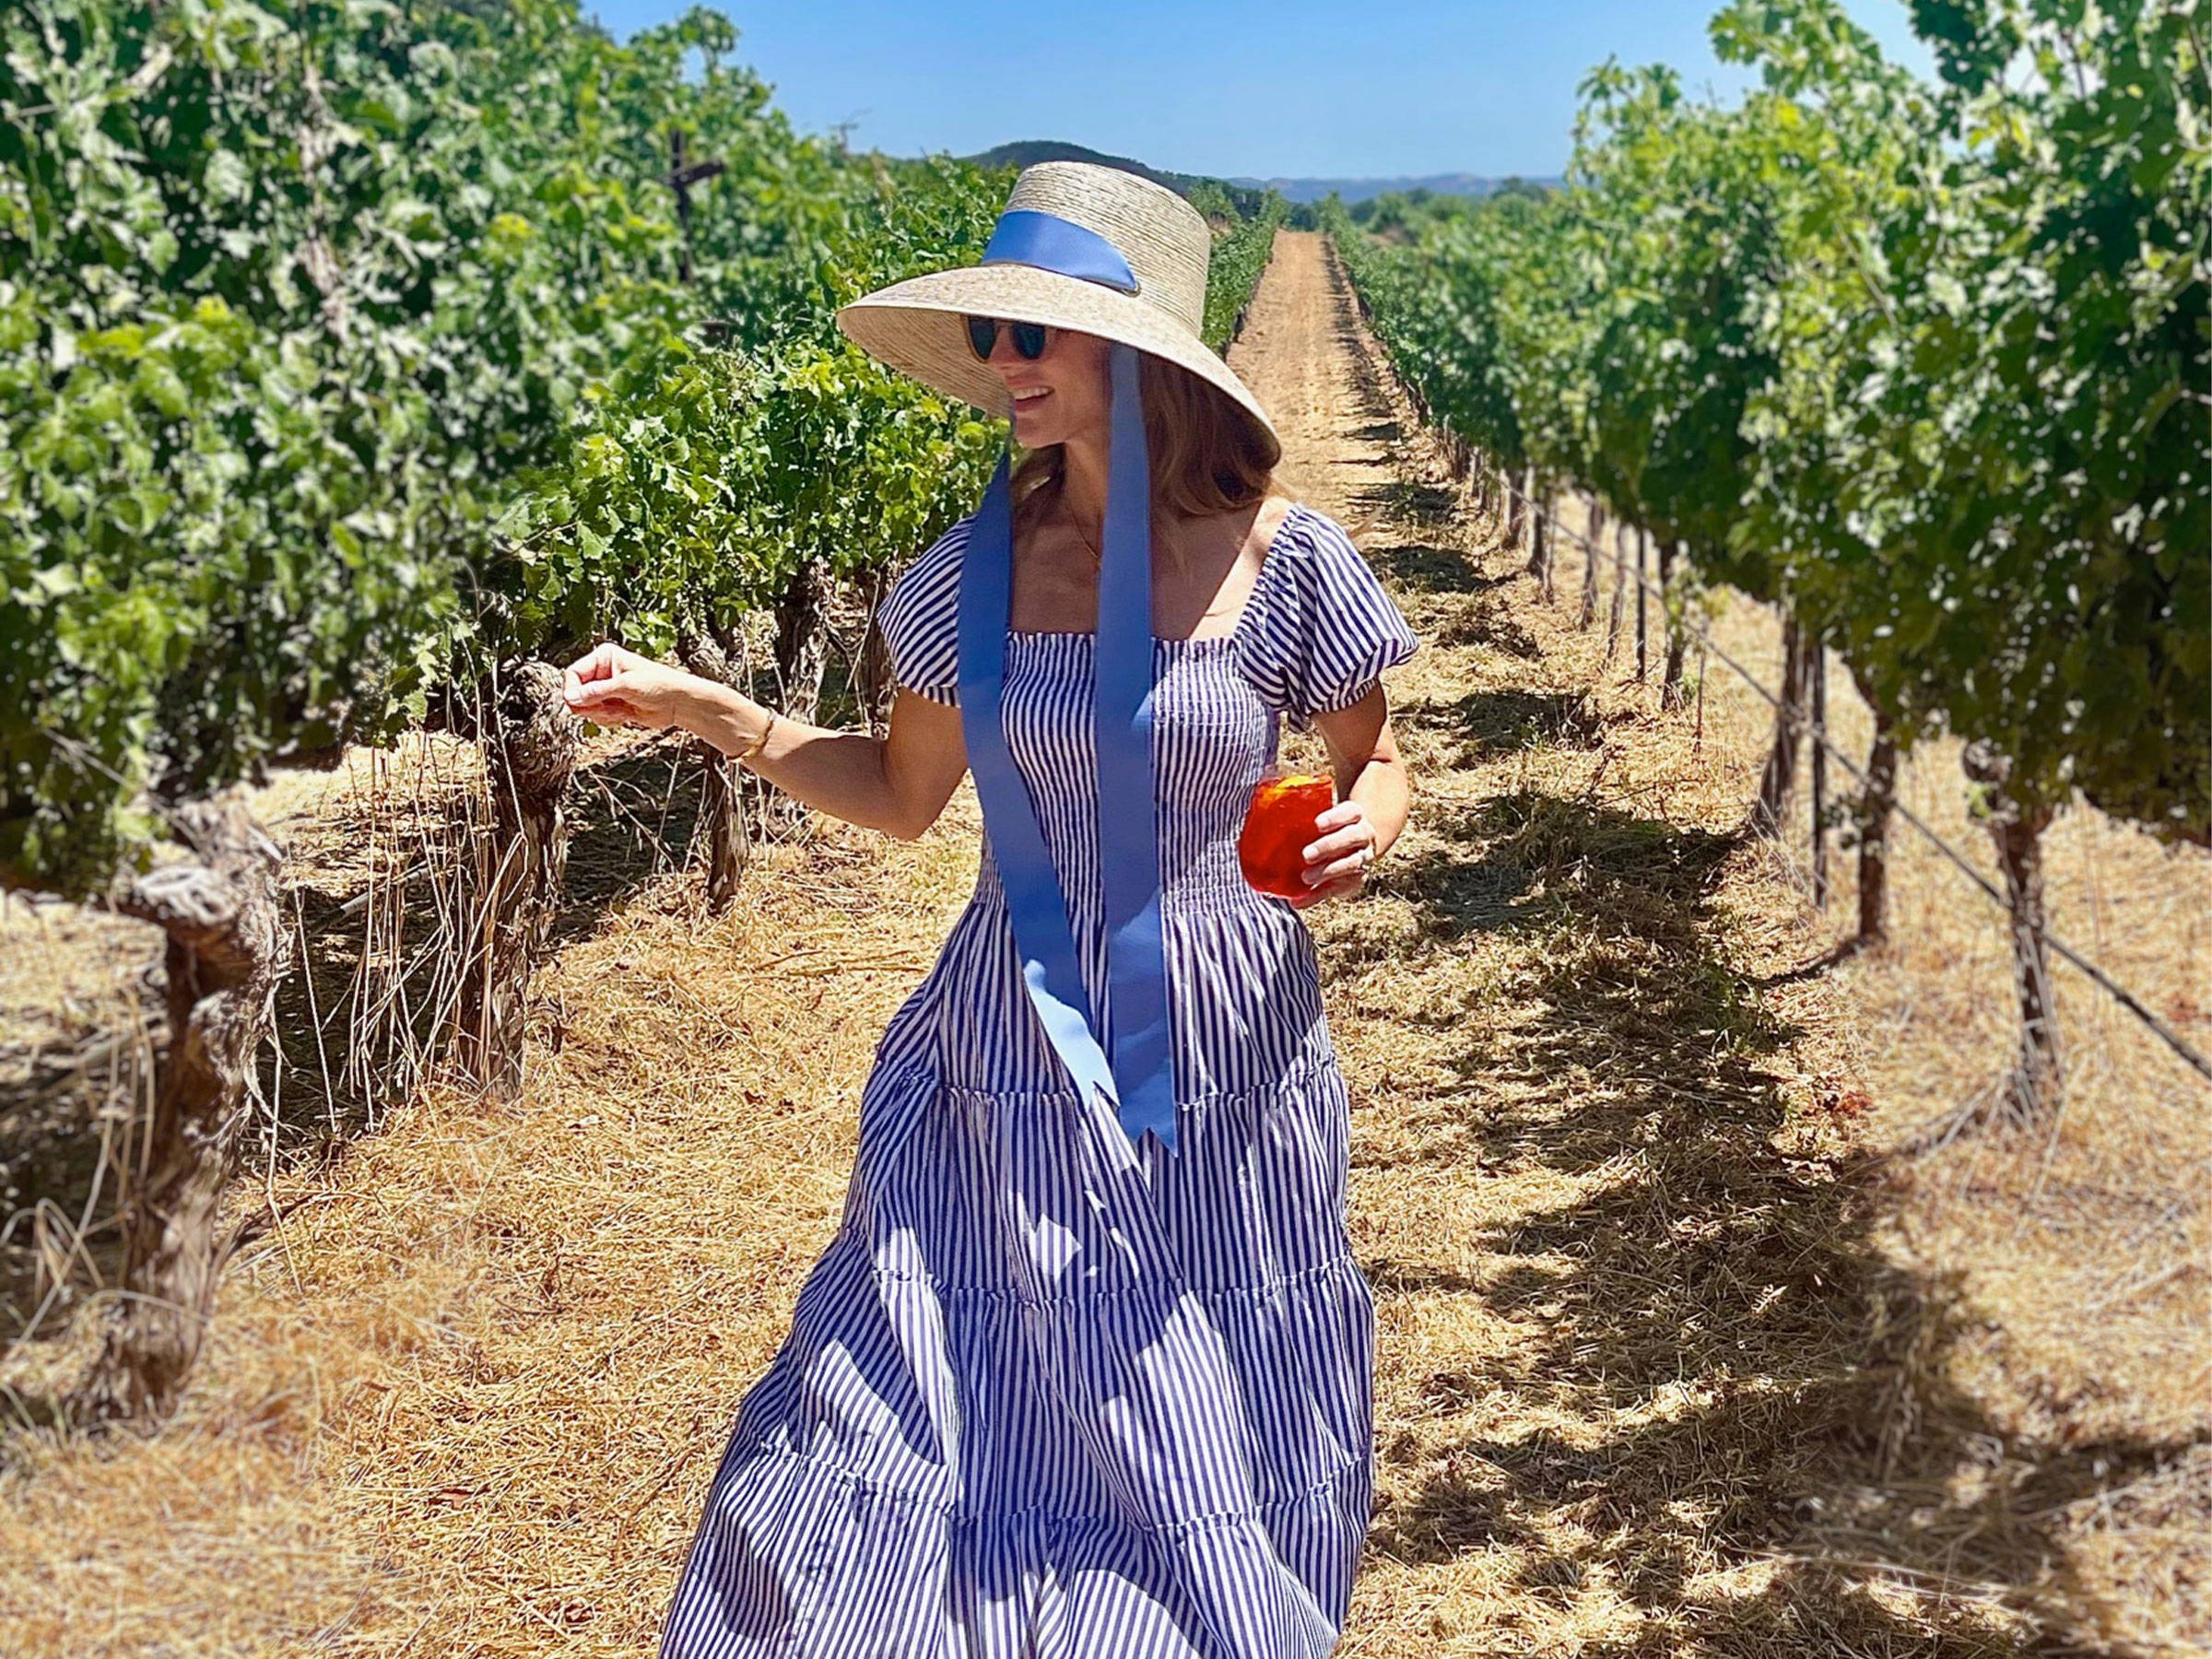 Lady in Vineyards Wearing a Chic Dress